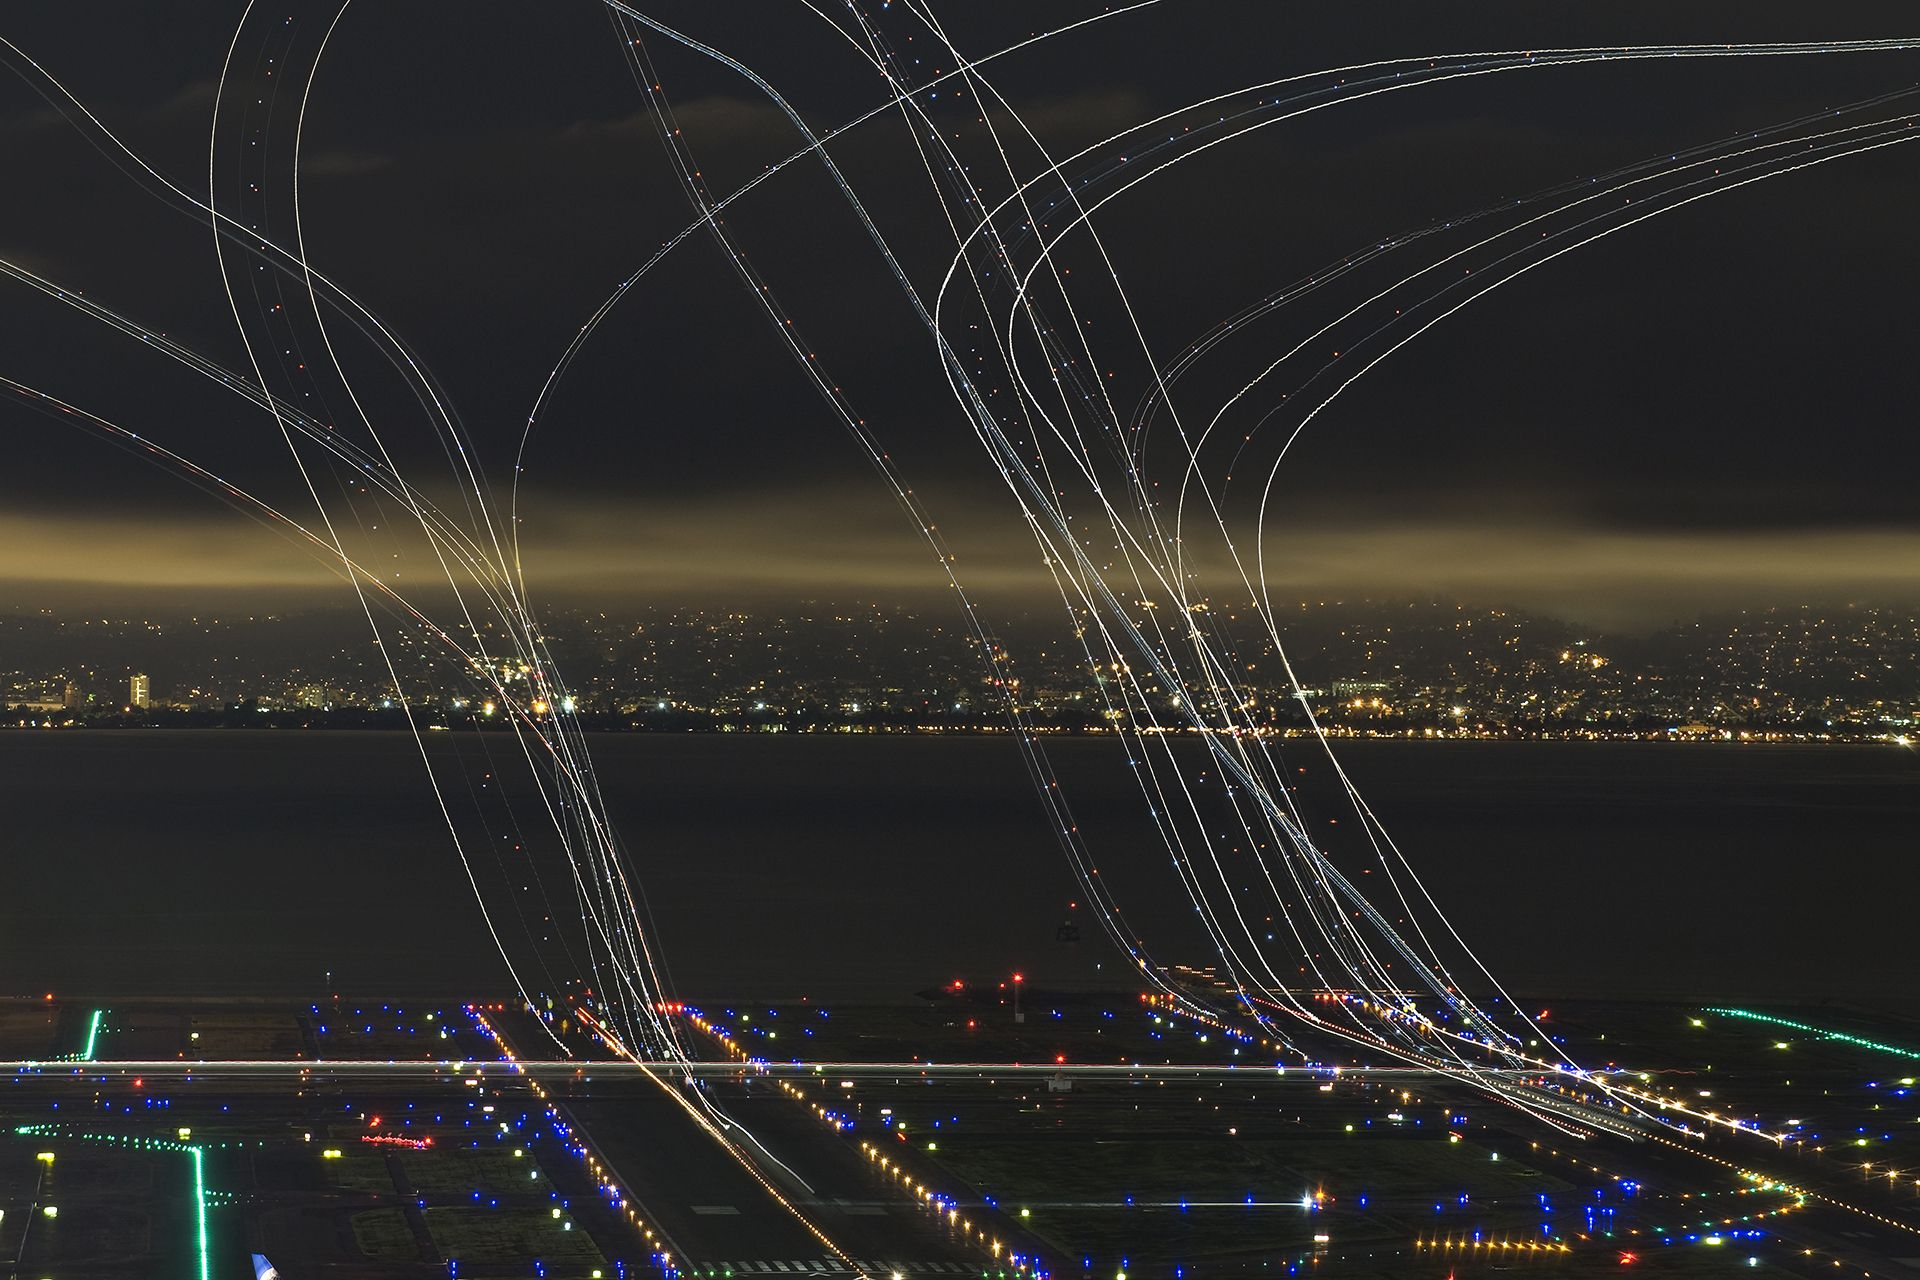 4 Hours of Air Traffic